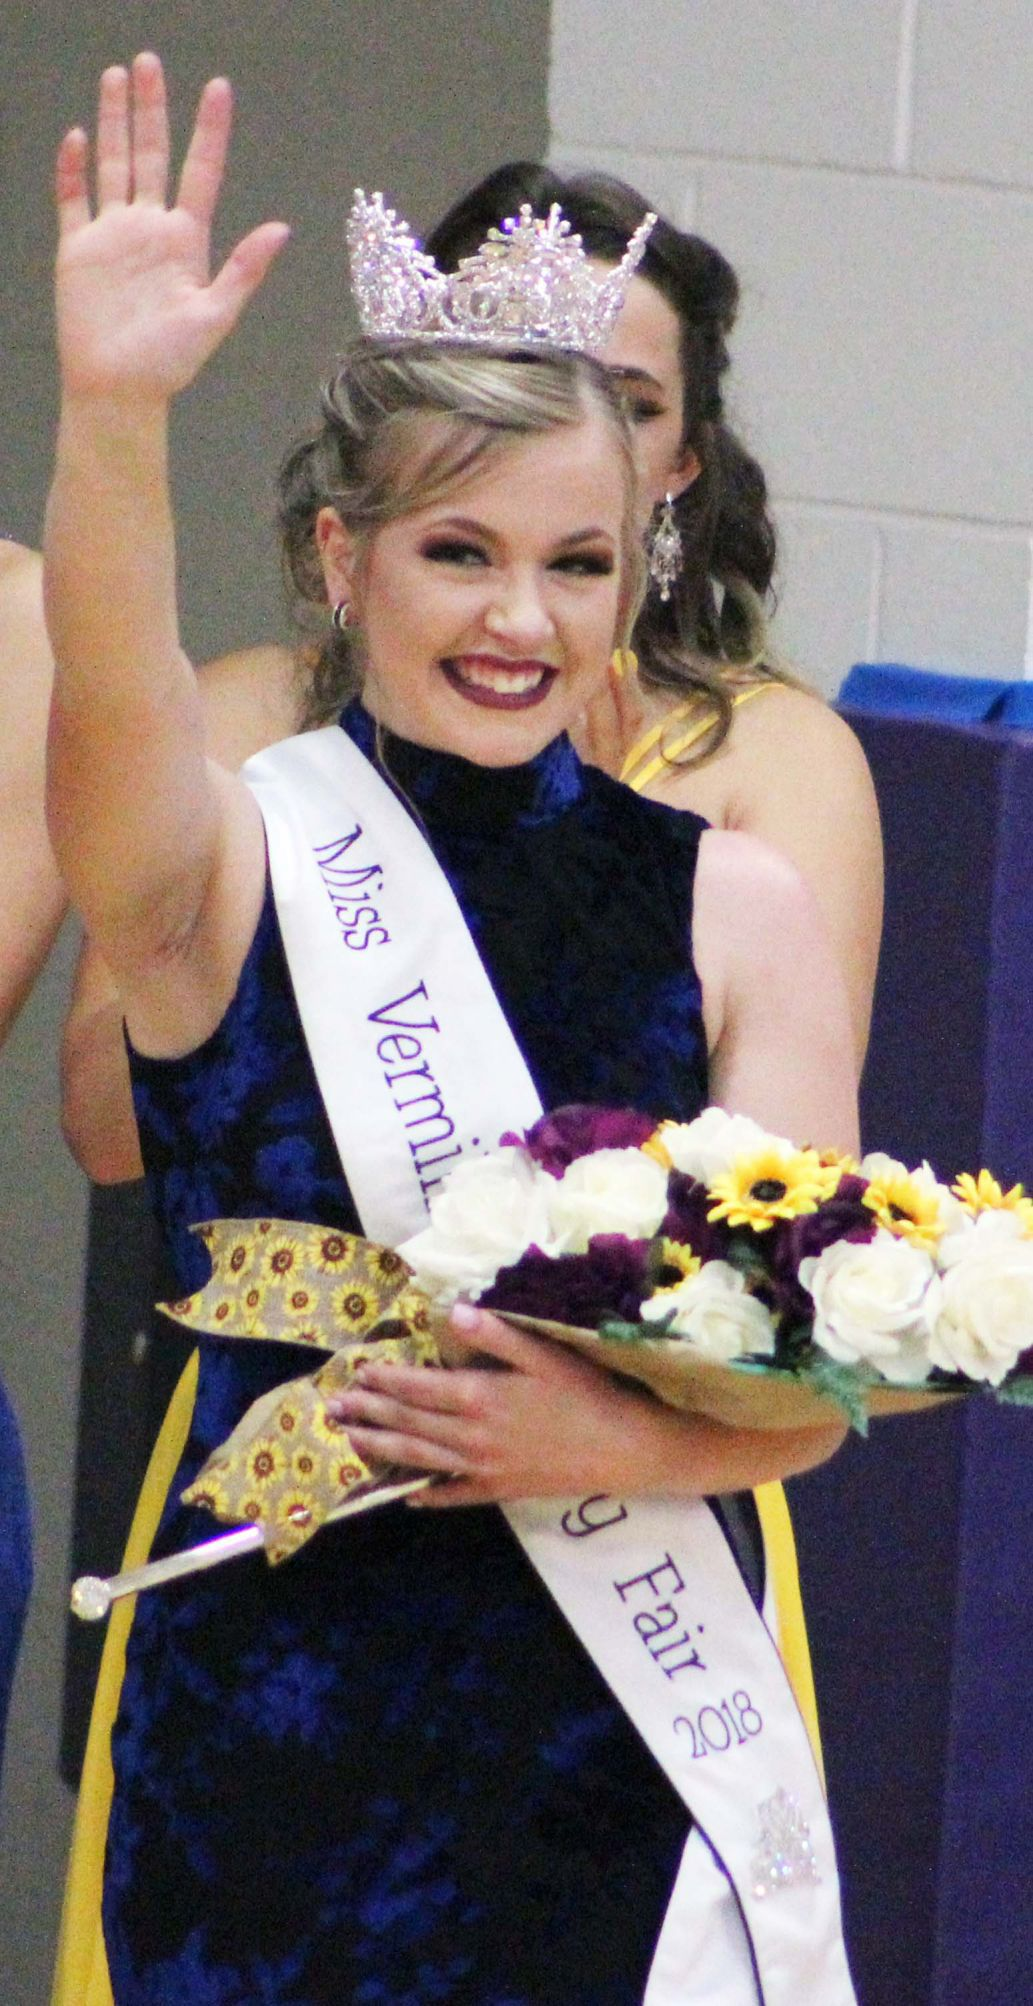 Queen Pageant Pic 1.jpg